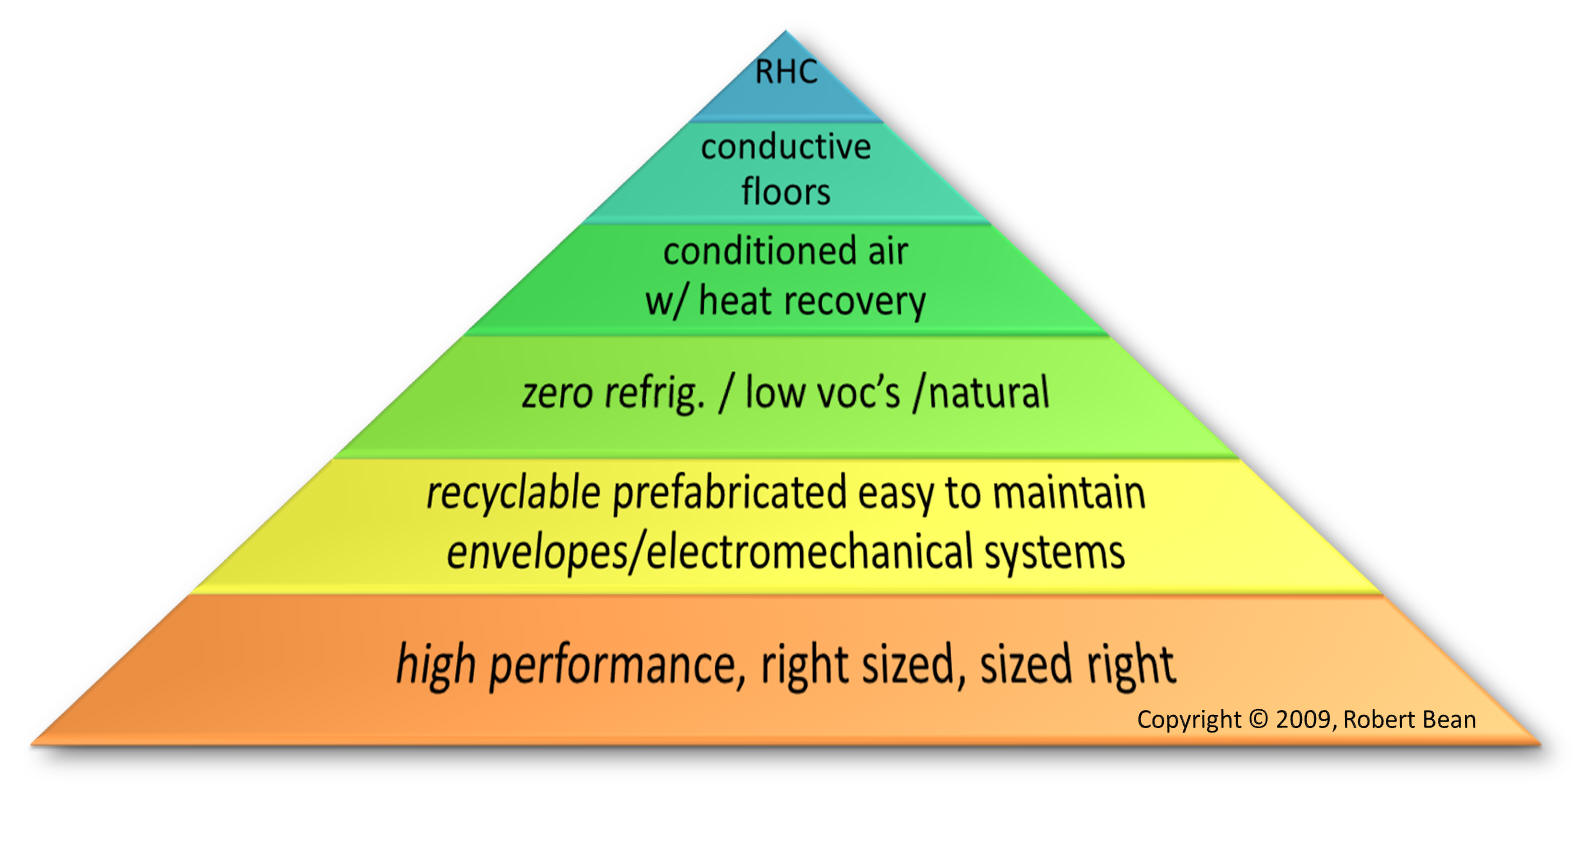 These are just a few items discussed at www.healthyheating.com #C69405